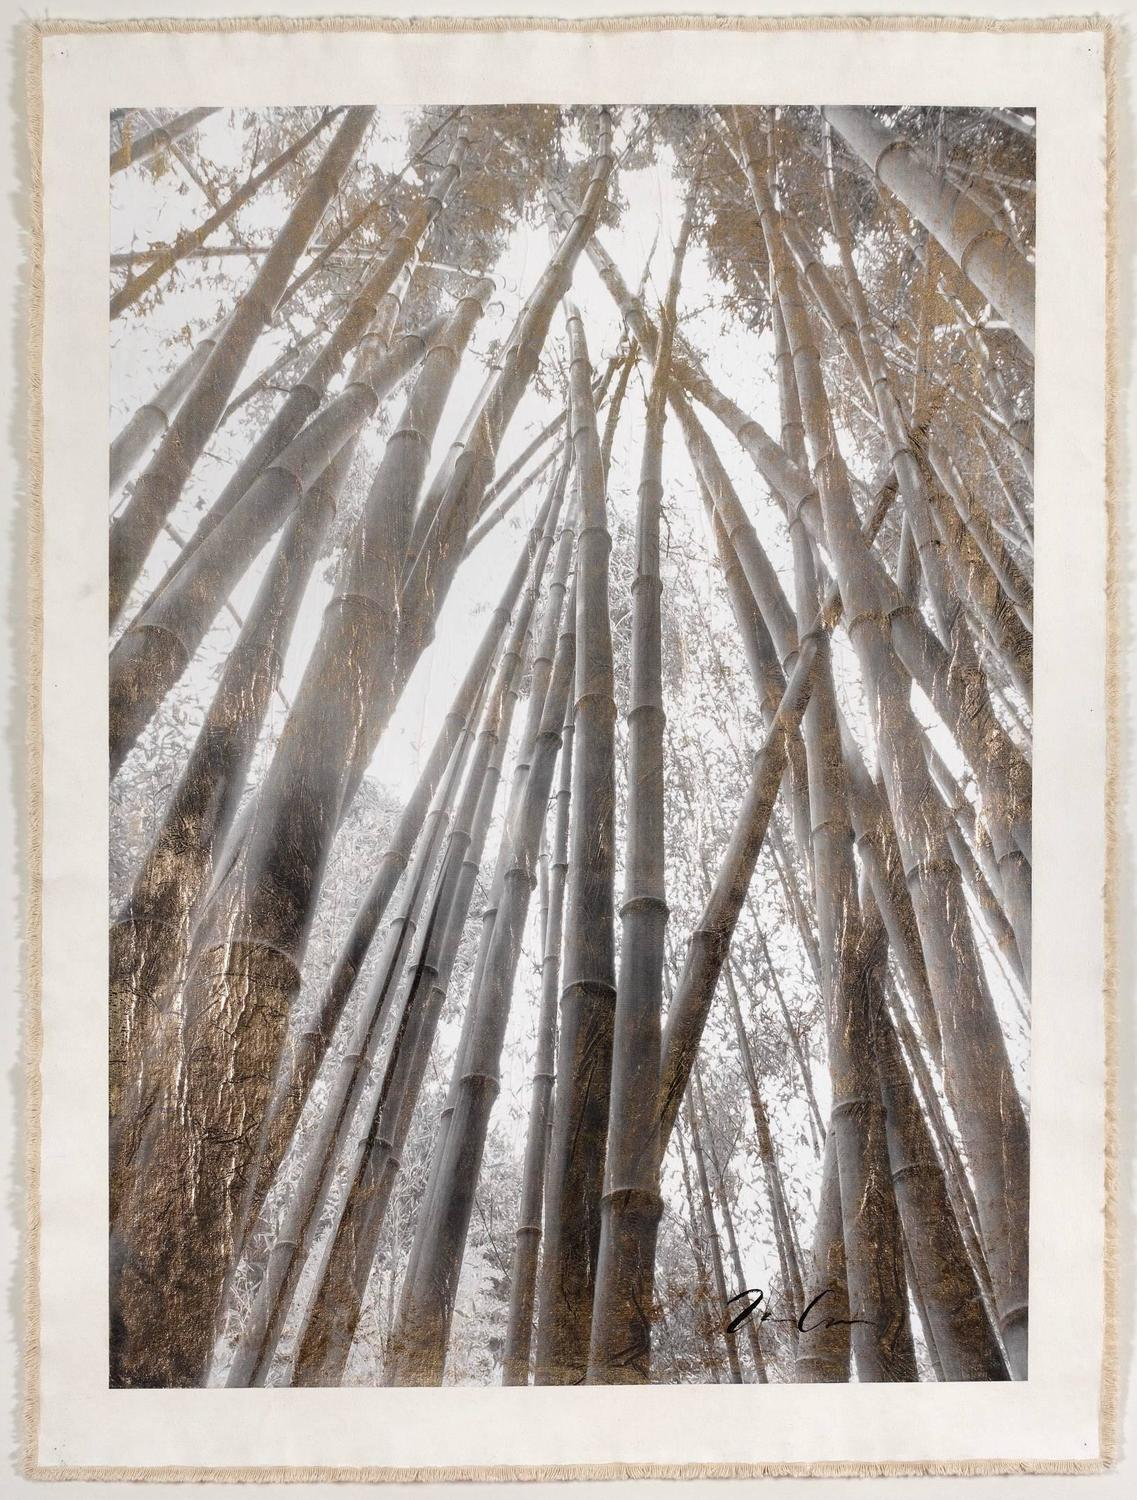 bill claps bamboo forest canopy painting for sale at 1stdibs - Bamboo Canopy 2015